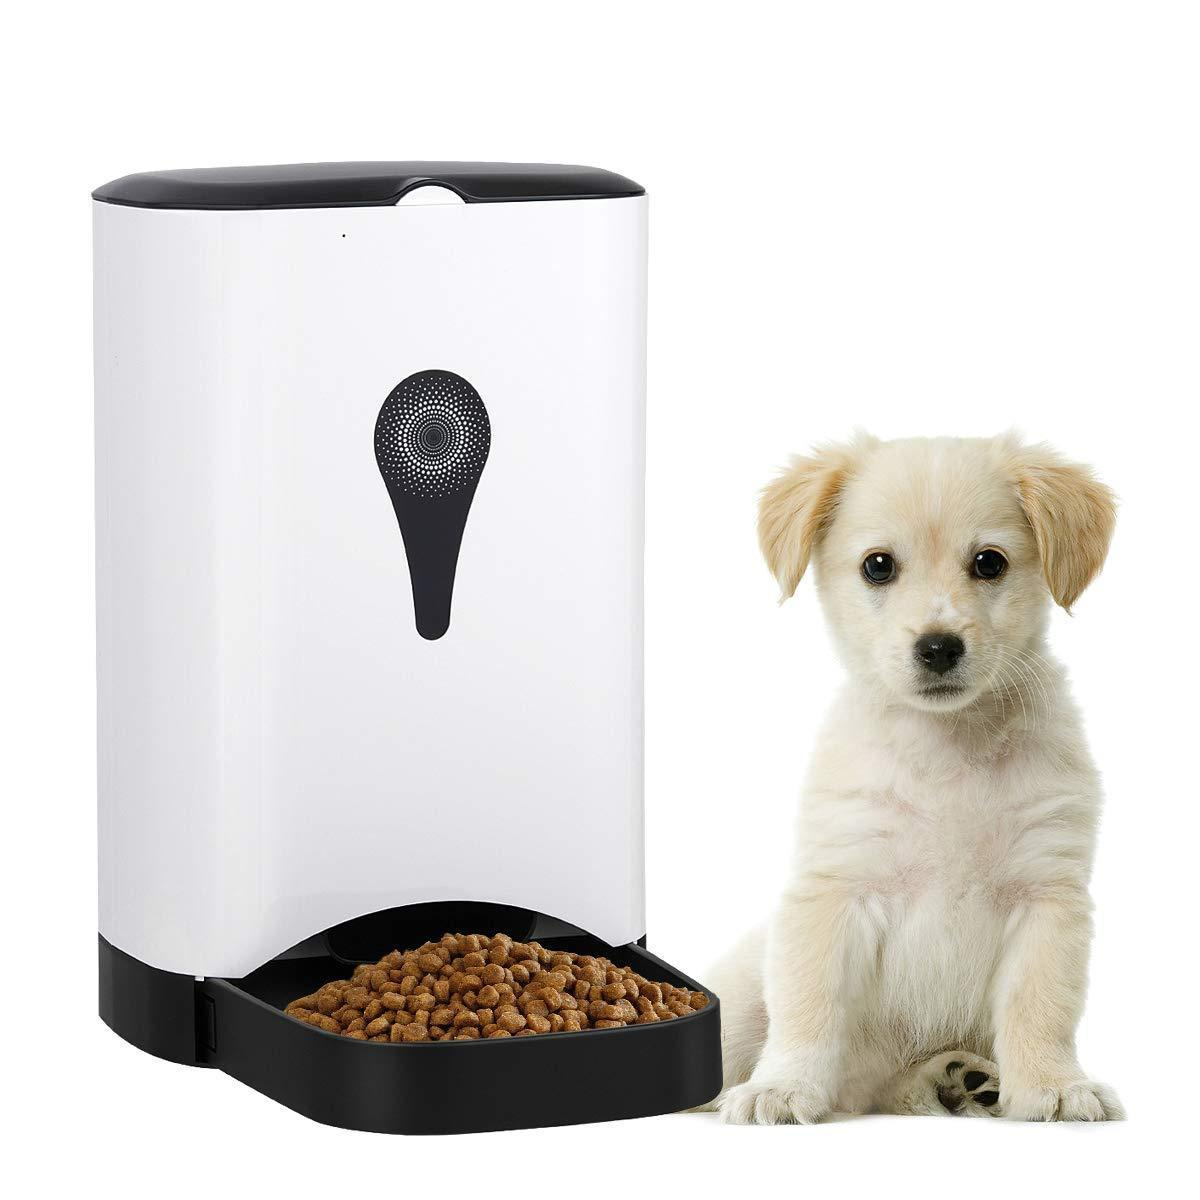 Pet Feeder With With Anti-Slip Foot Design